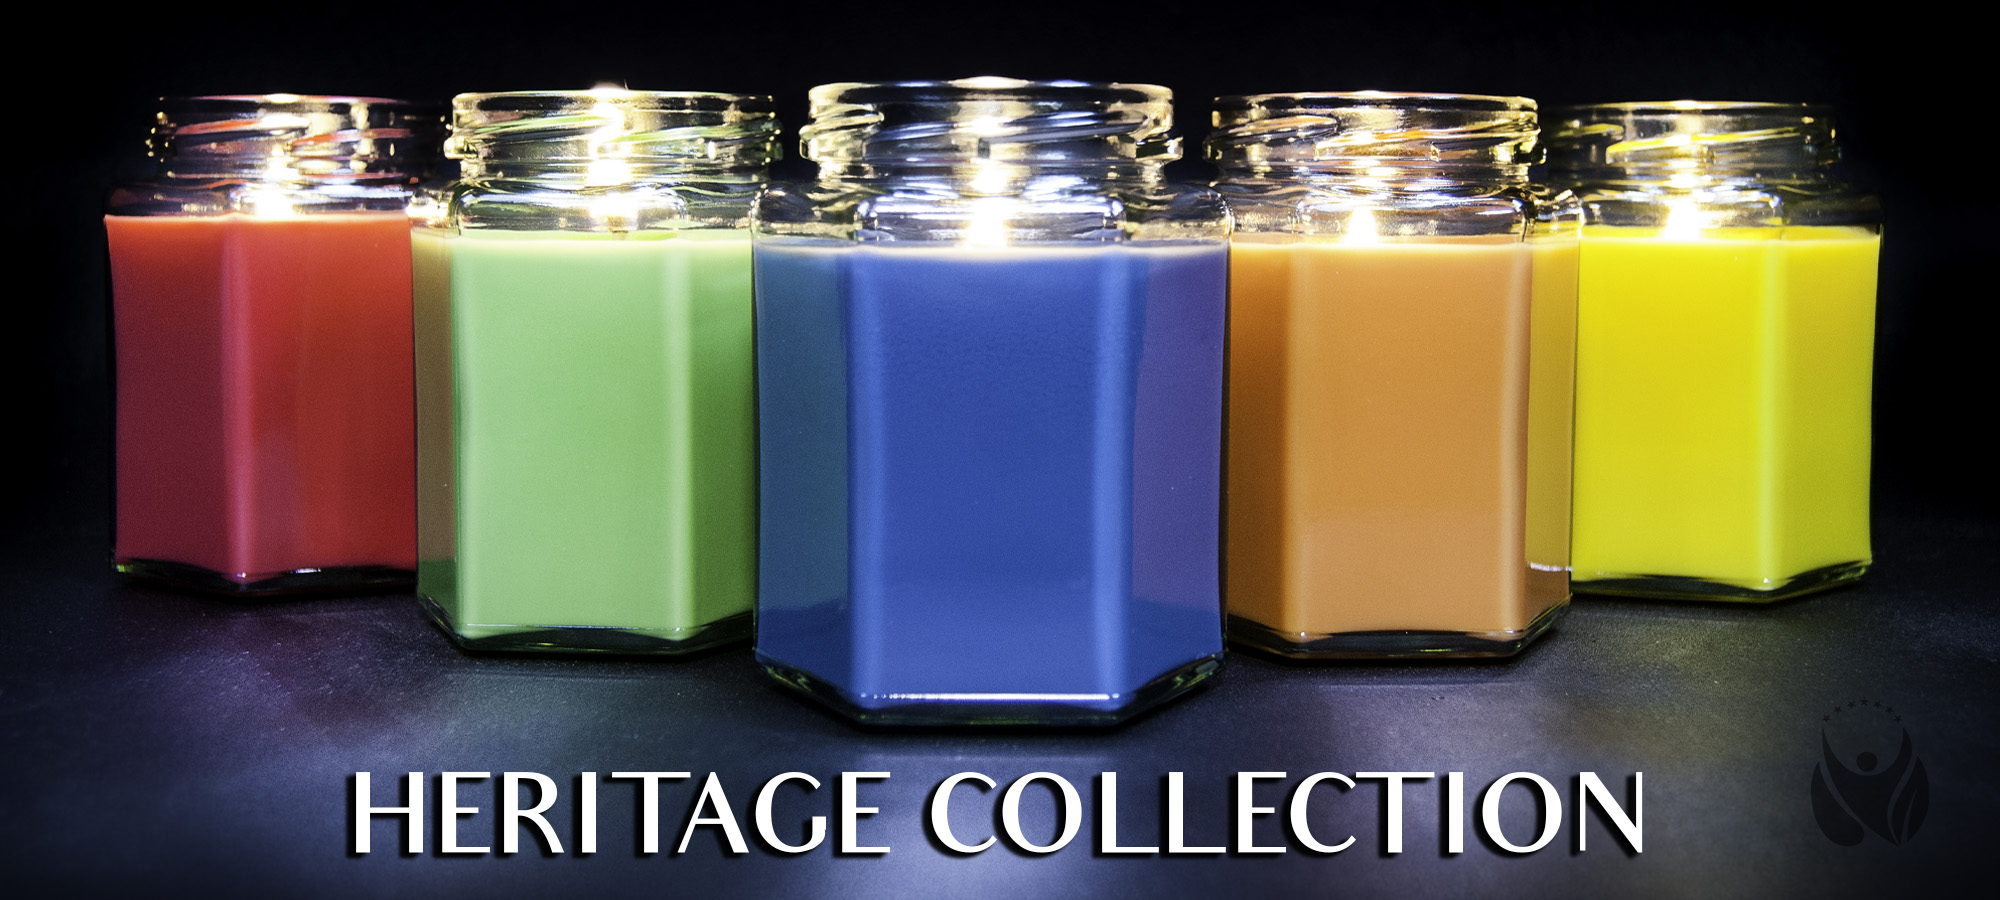 /store/ritzalife/p/1485:c:175_126/experience/heritage-candle-collection/